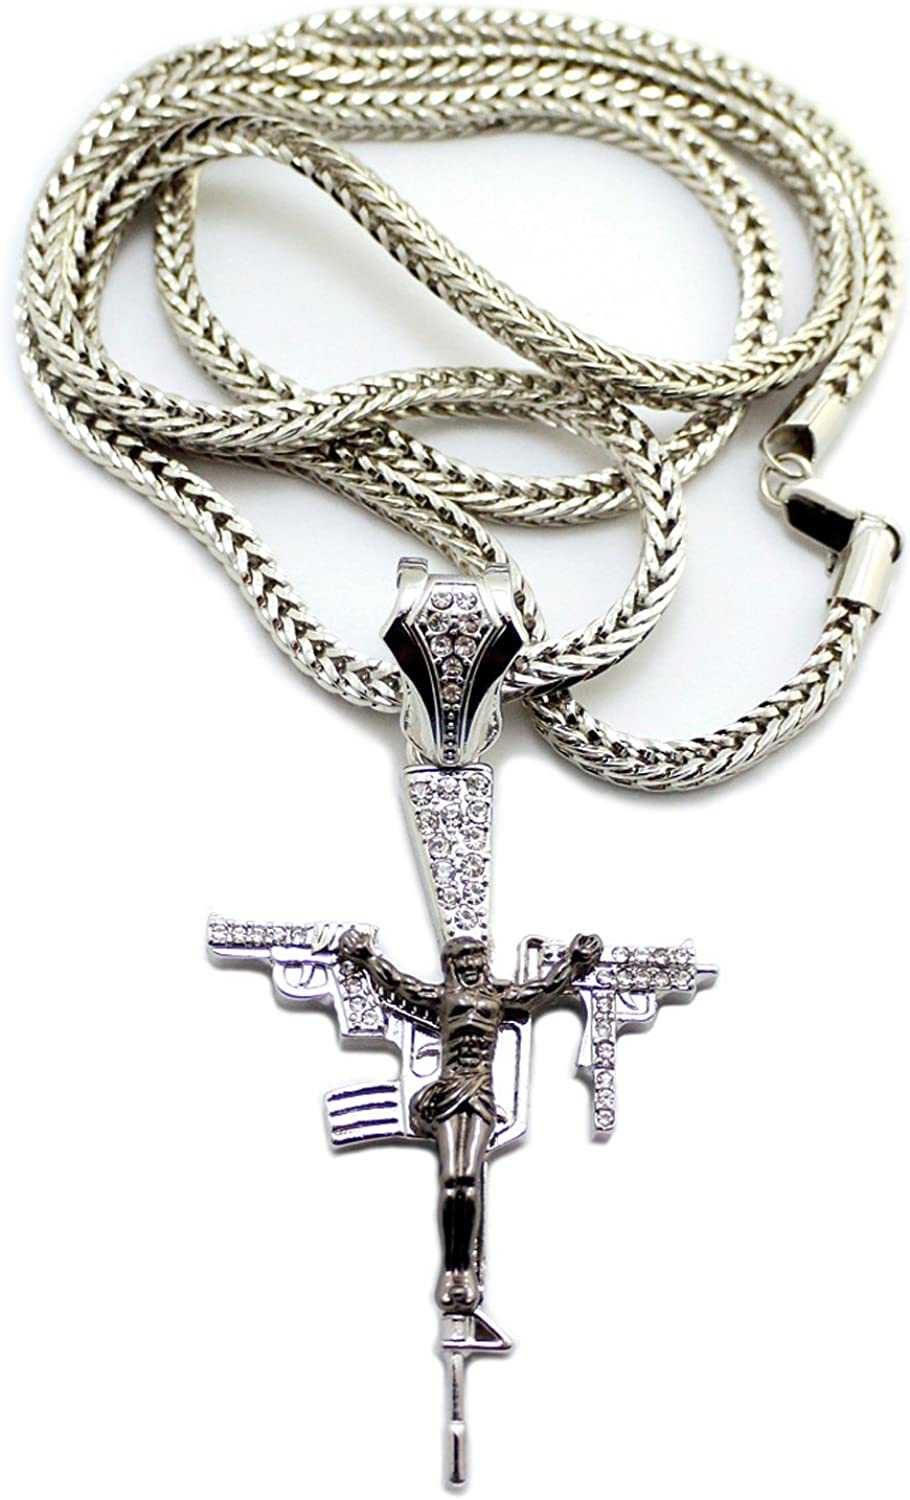 NYFASHION101 Iced Out Crucifixion Cross Pendant 4mm 36 Franco Chain Necklace Black